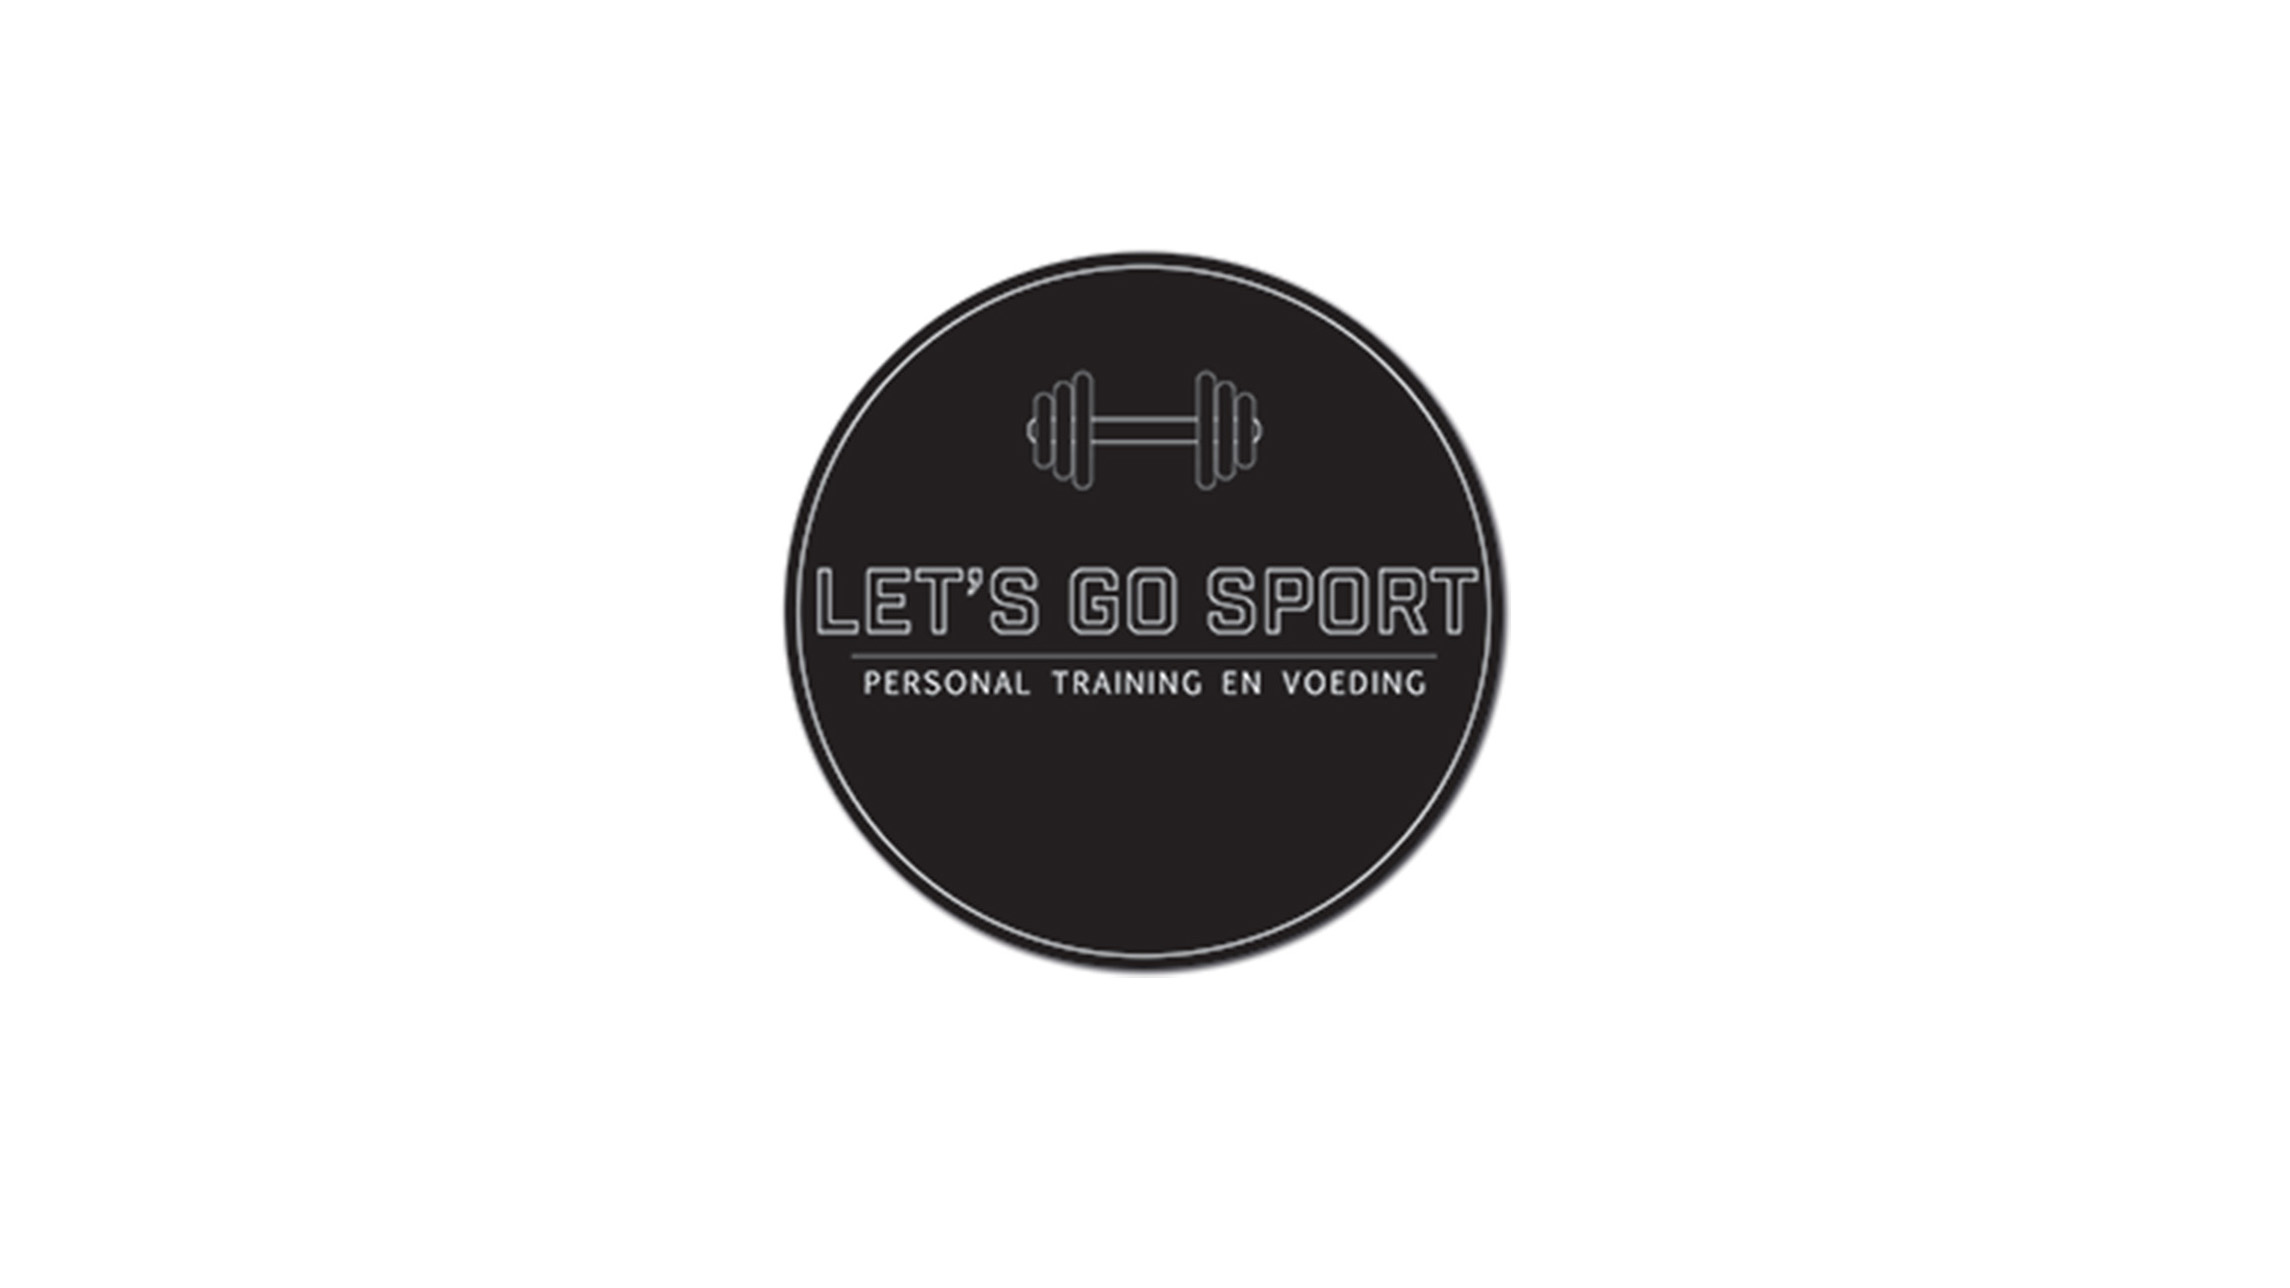 Let's Go Sport